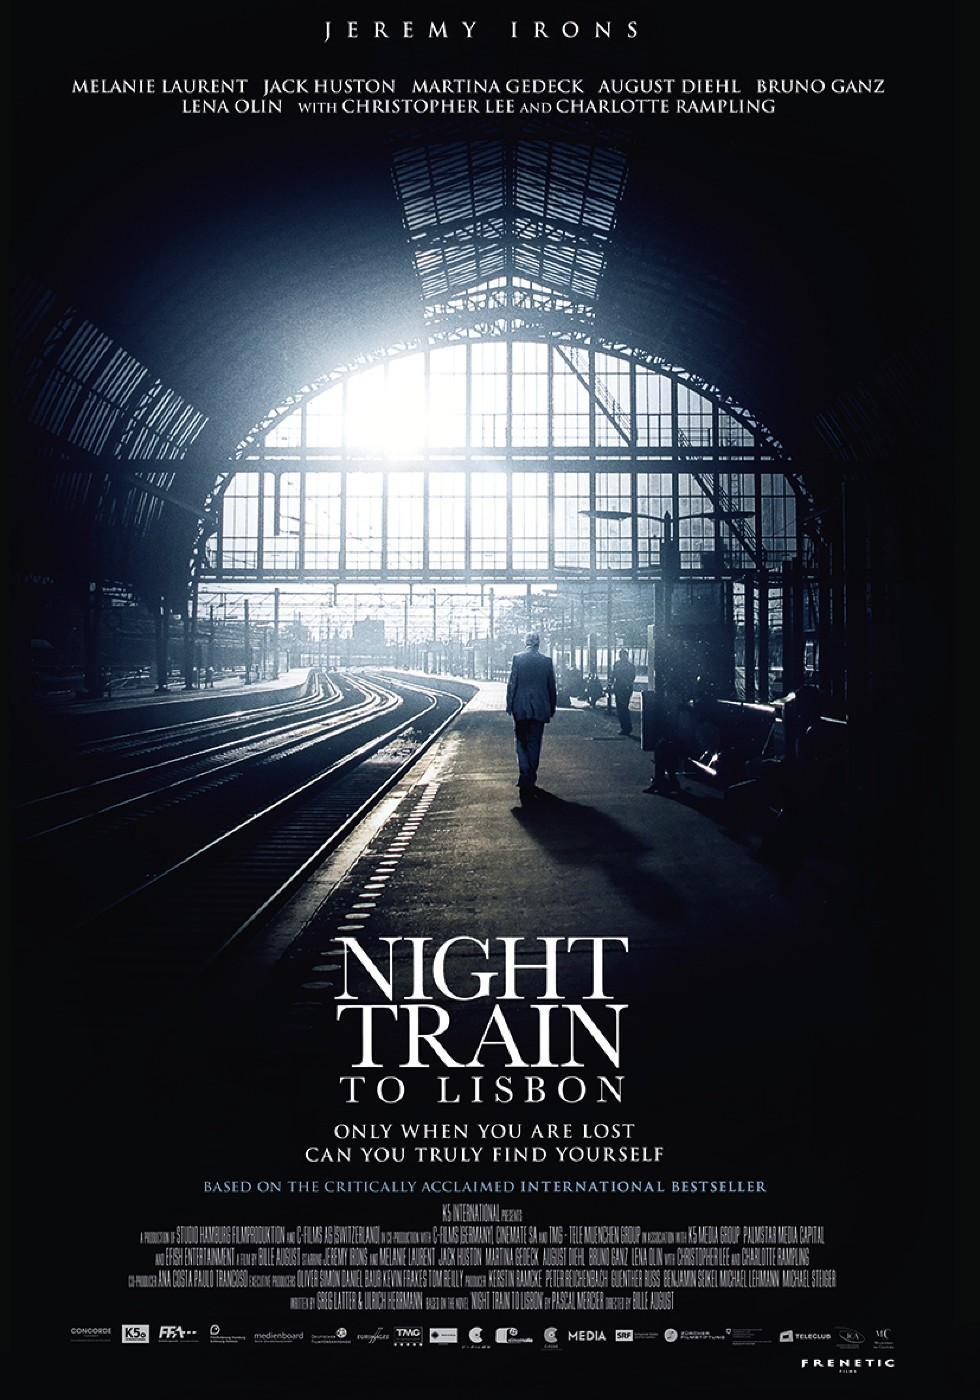 night-train-to-lisbon-poster.jpg